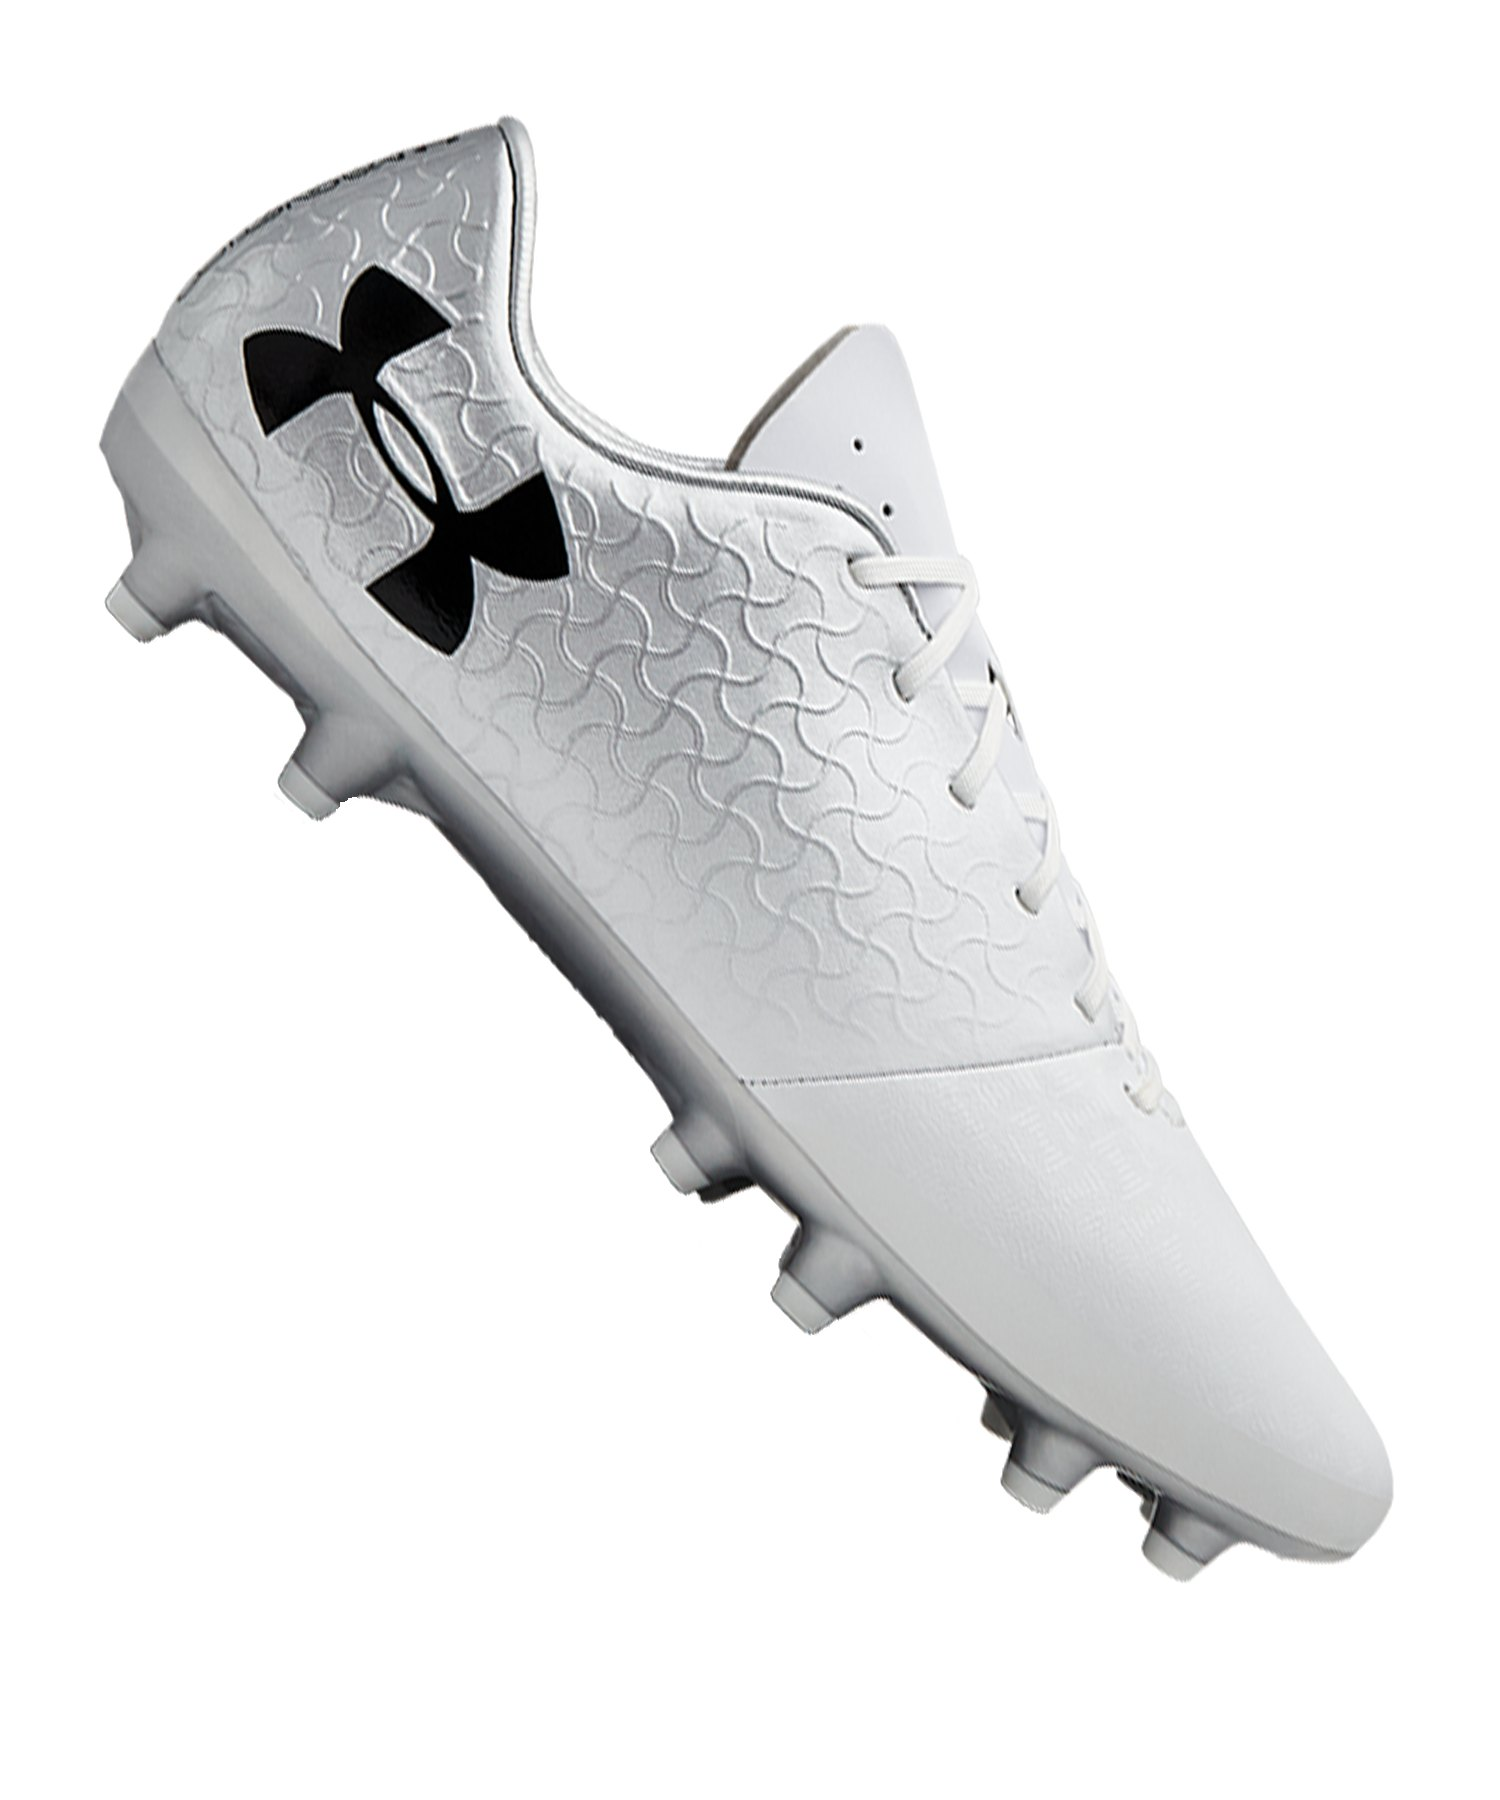 Under Armour Magnetico Select FG Weiss F100 - Weiss